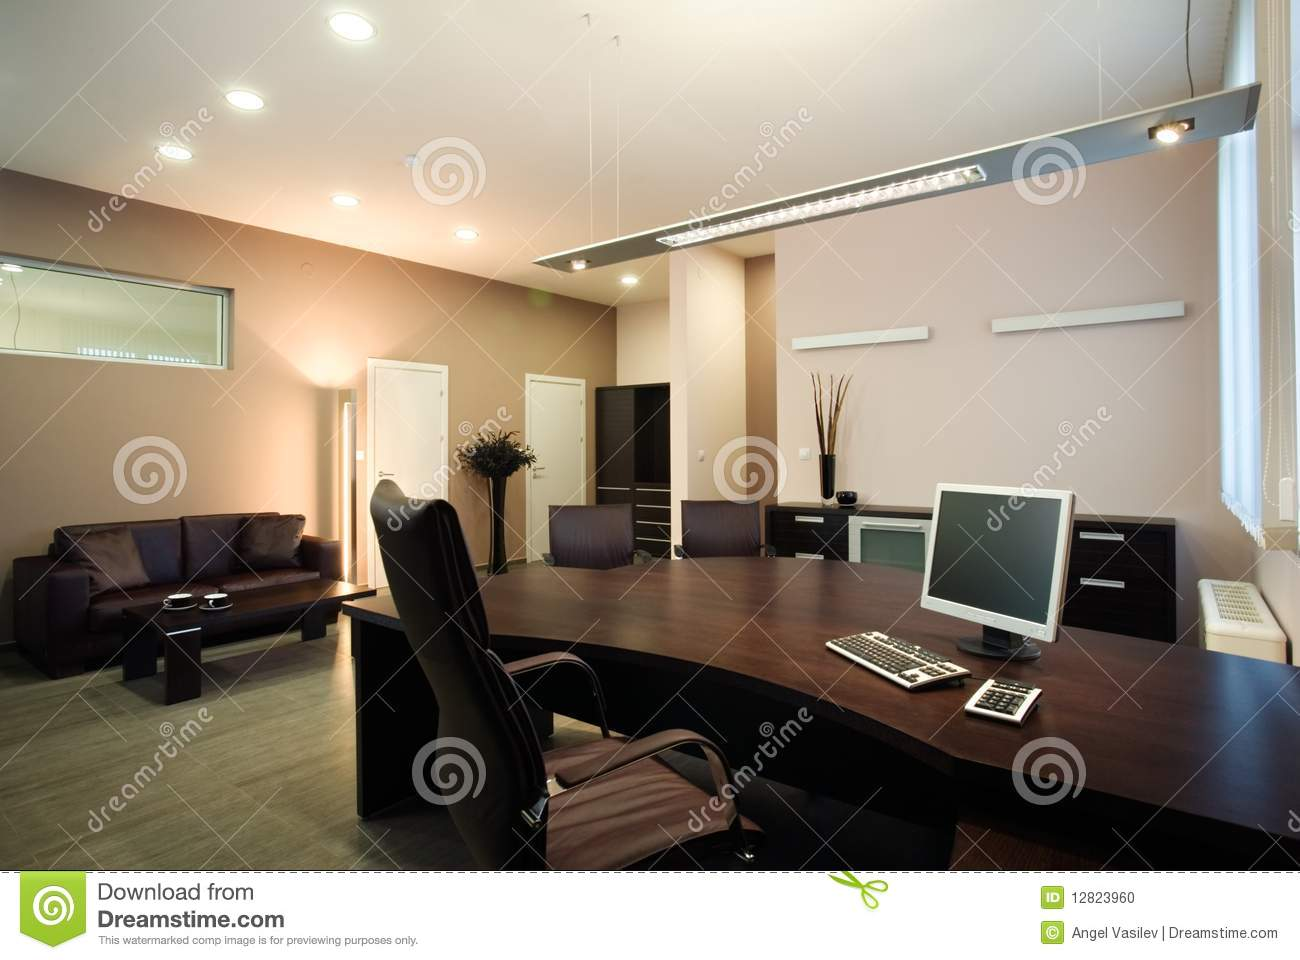 elegant and luxury office interior design please feel welcome to check